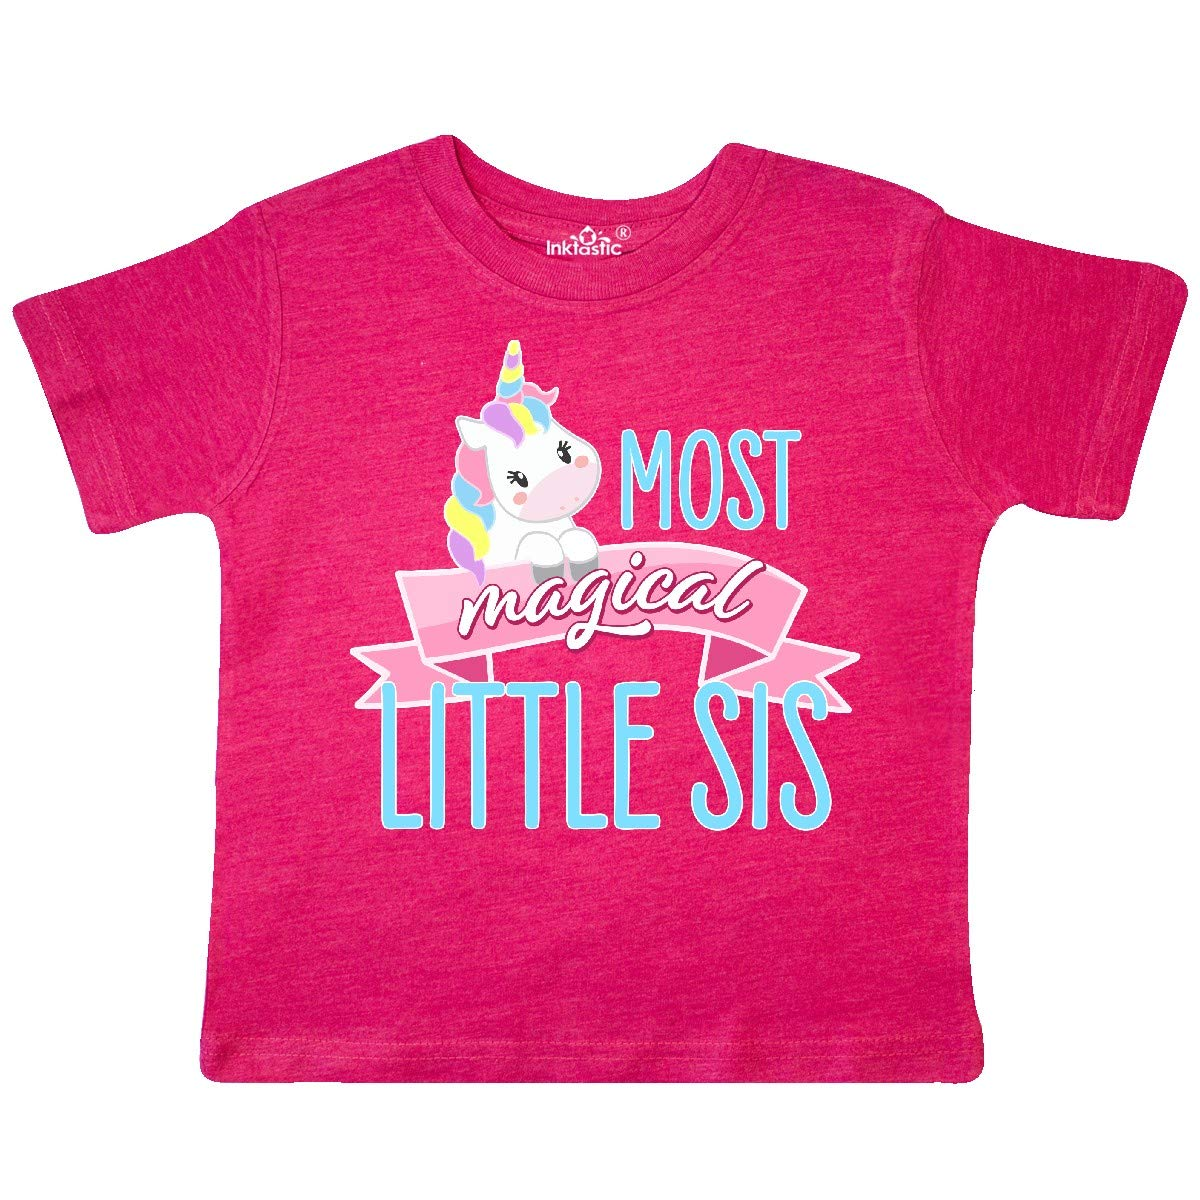 Cute Unicorn Toddler T-Shirt inktastic Most Magical Little Sis